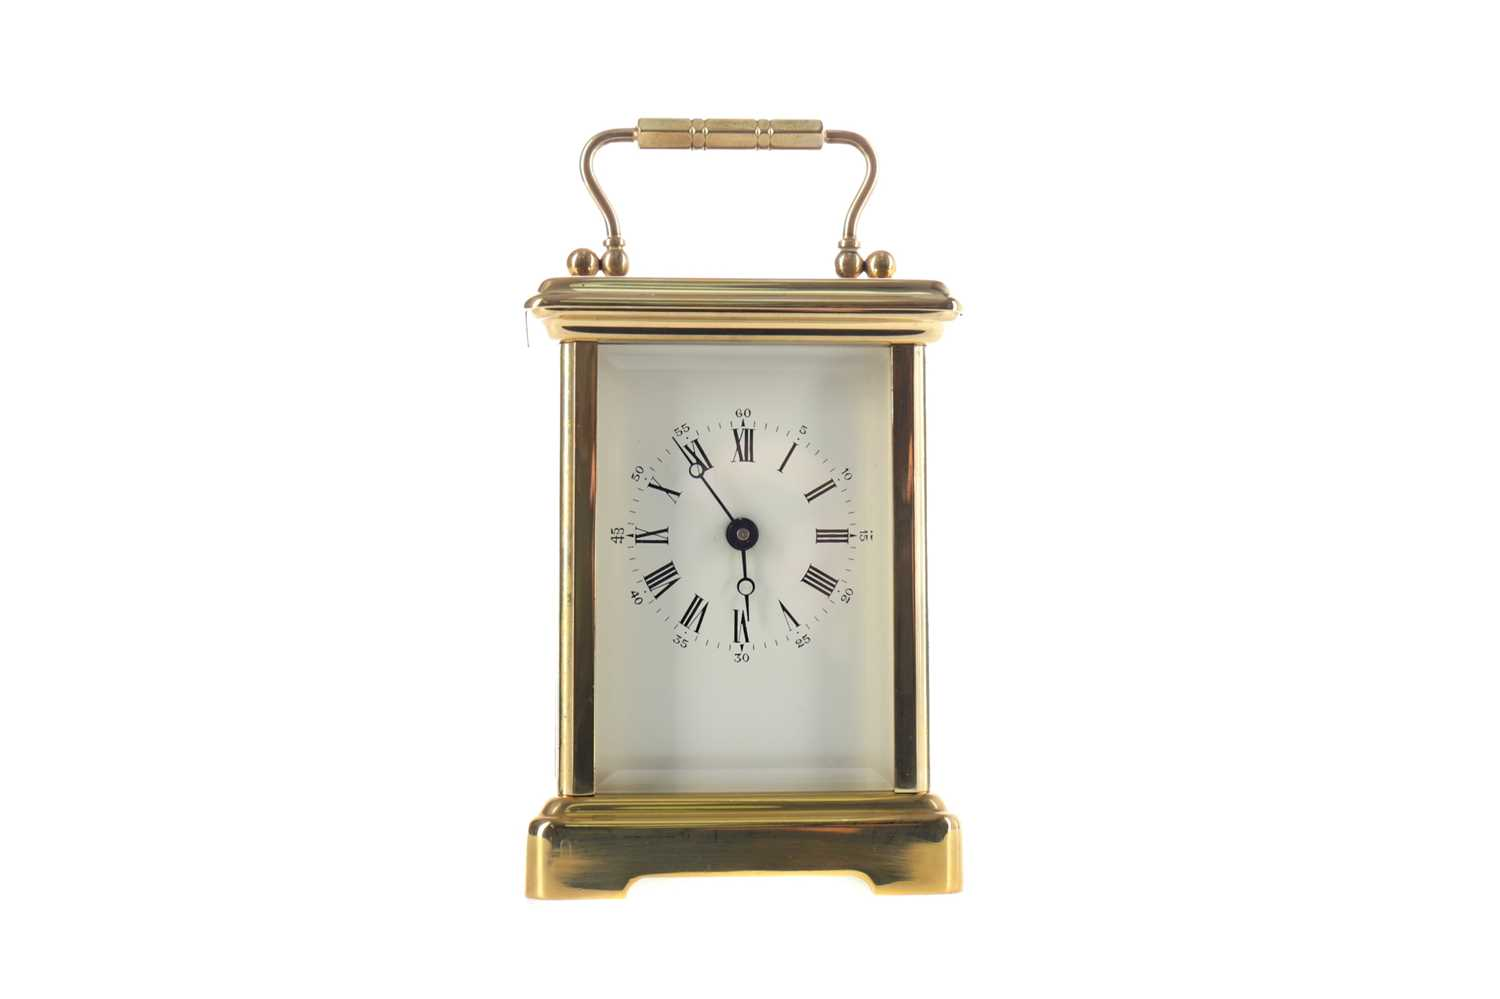 Lot 1757 - AN EARLY 20TH CENTURY CARRIAGE CLOCK